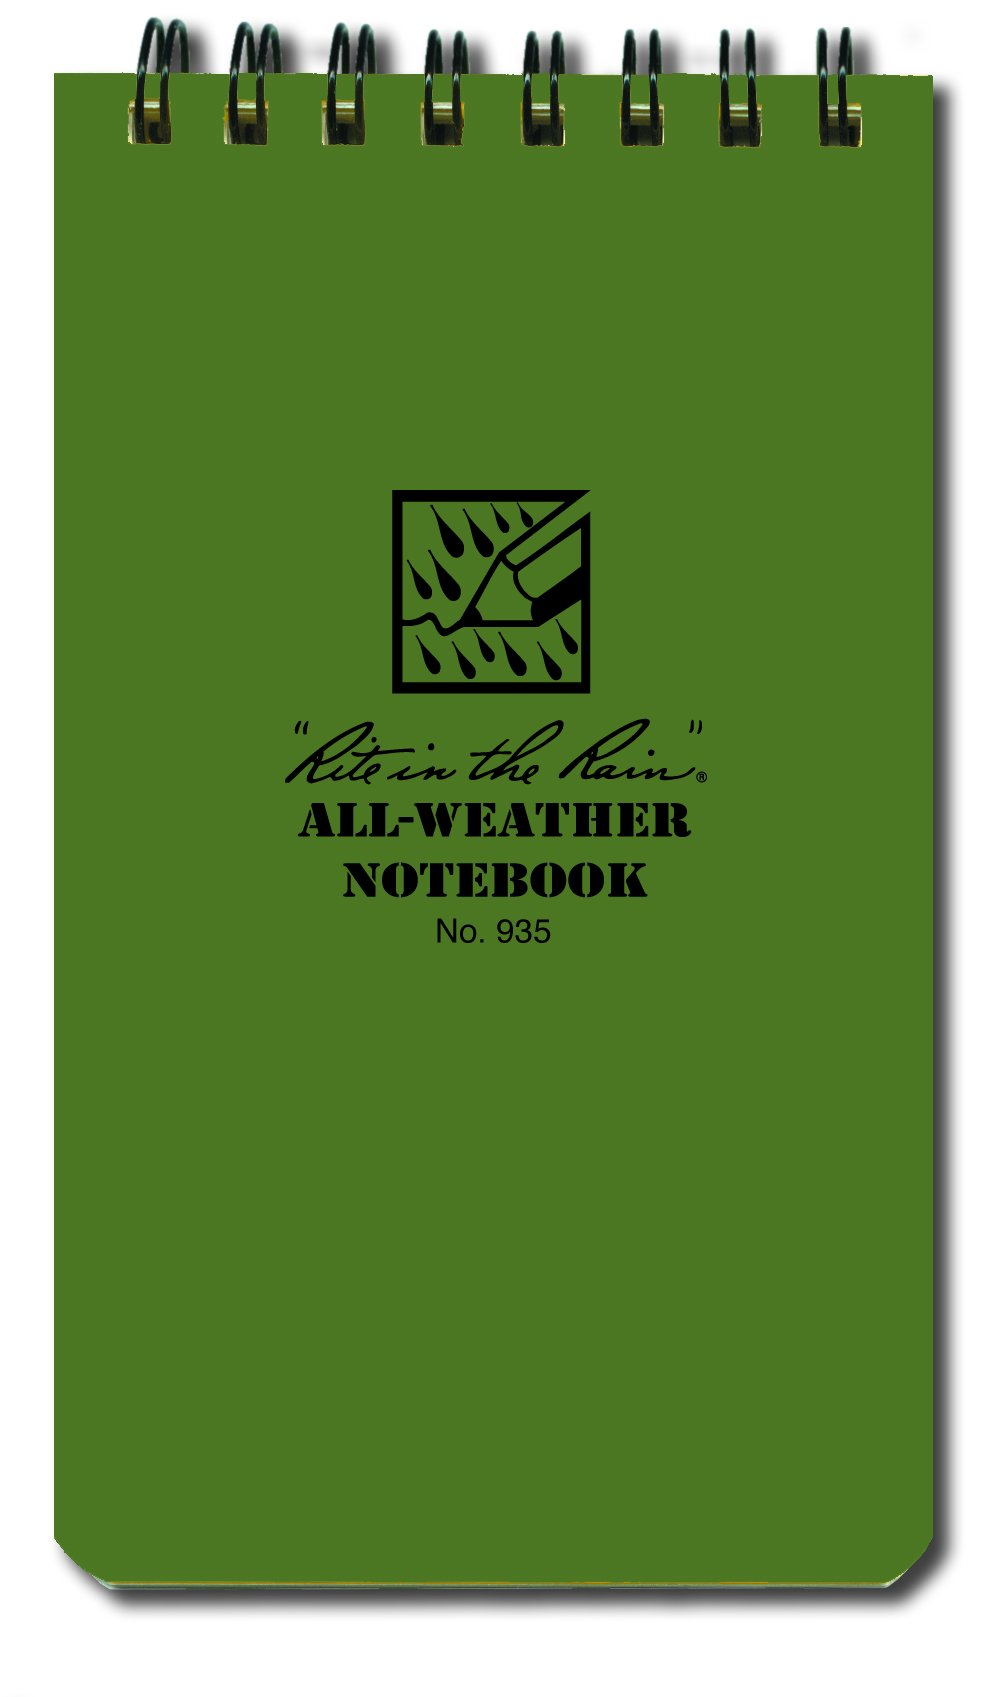 3 x 5 Notebook Green